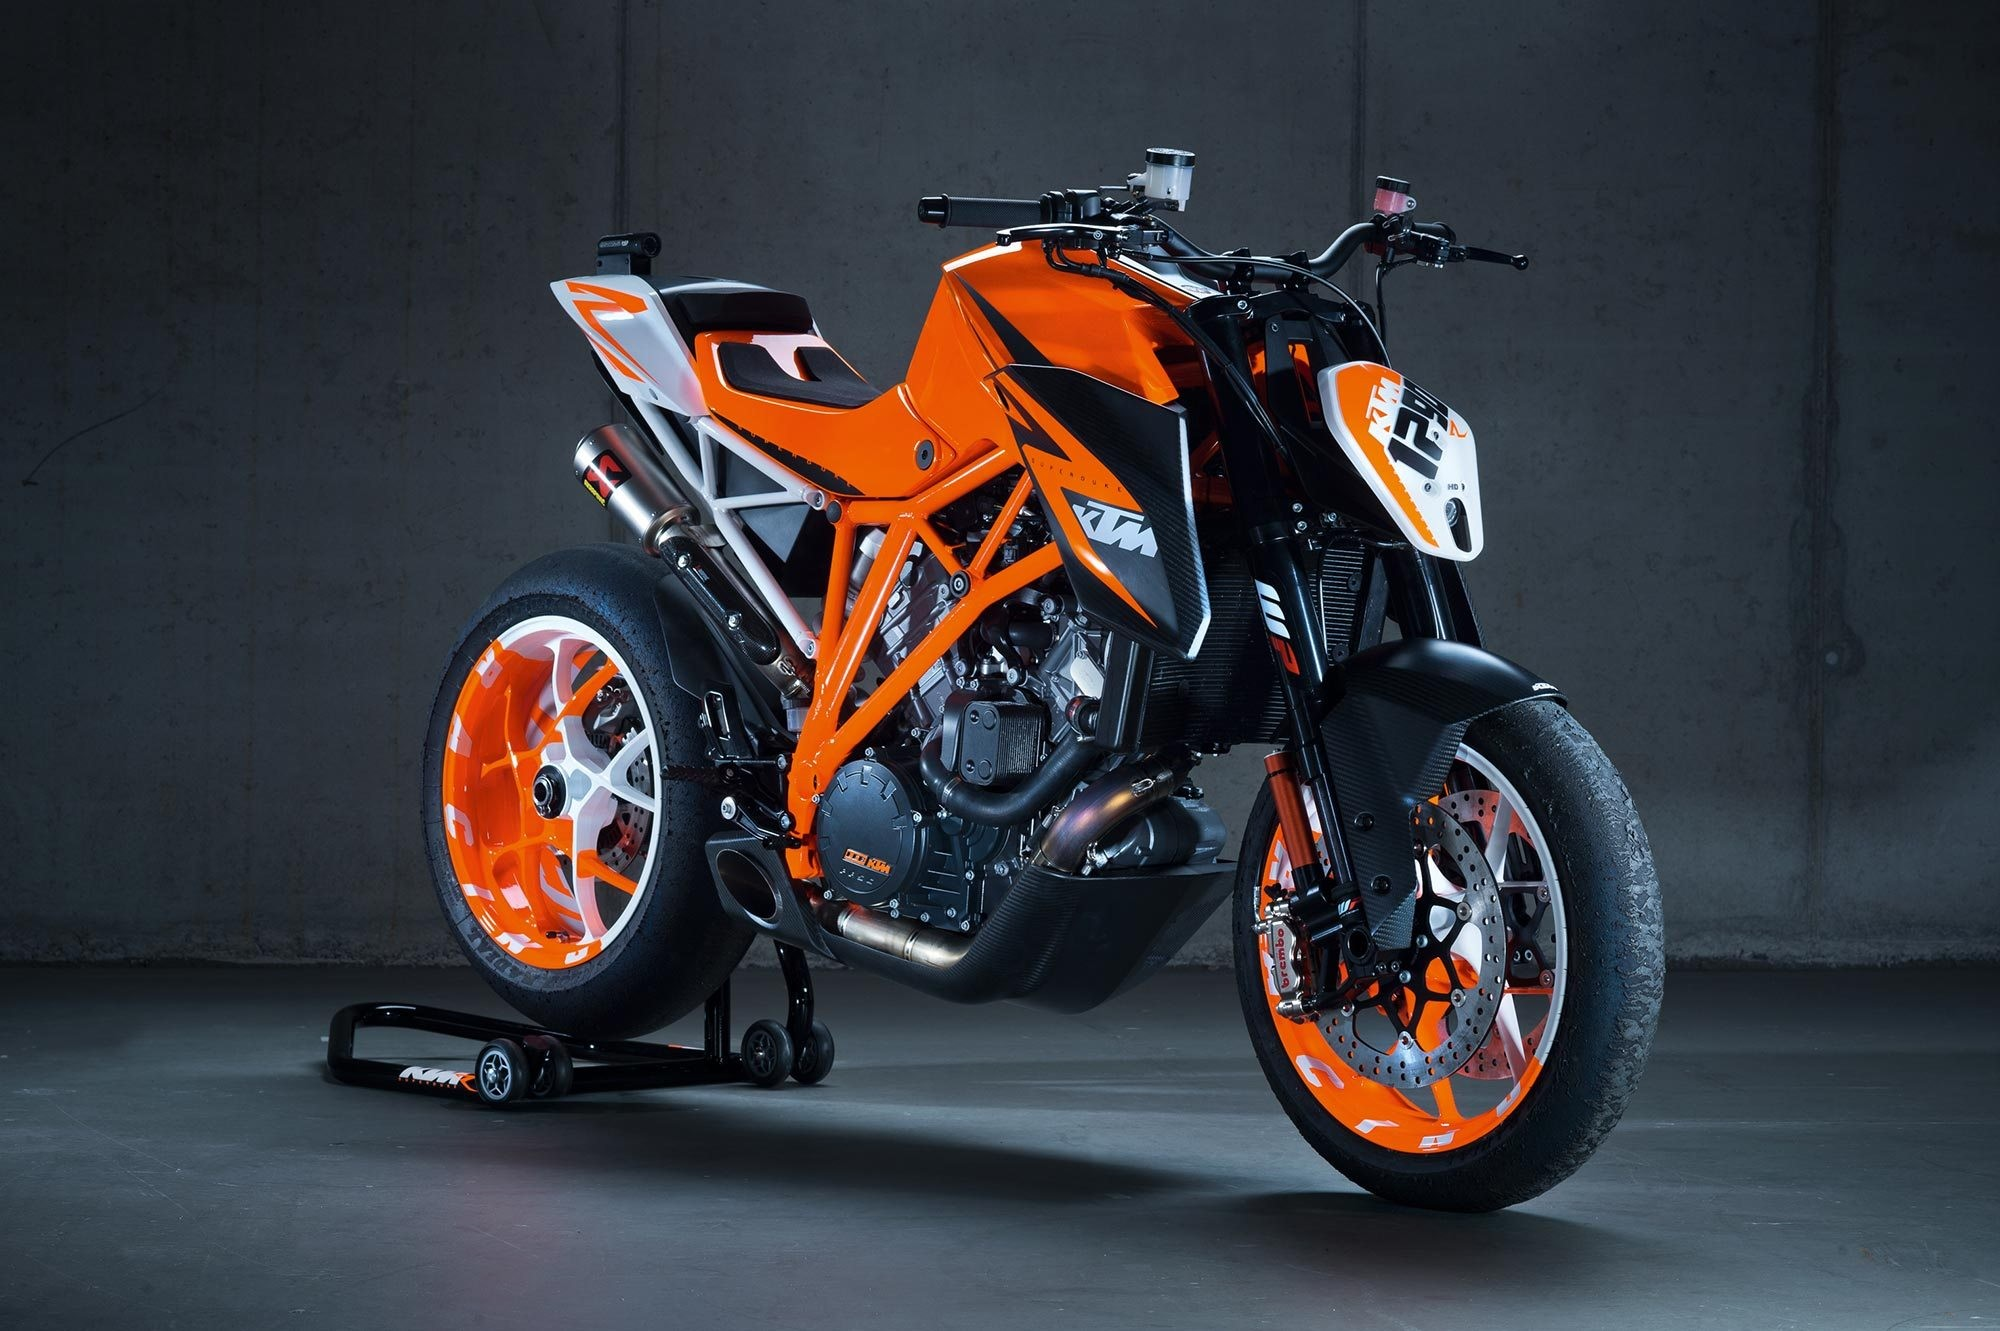 Res: 2000x1331, Ktm 1290 Super Duke R Patriot Edition Wallpapers Wide Is 4K Wallpaper